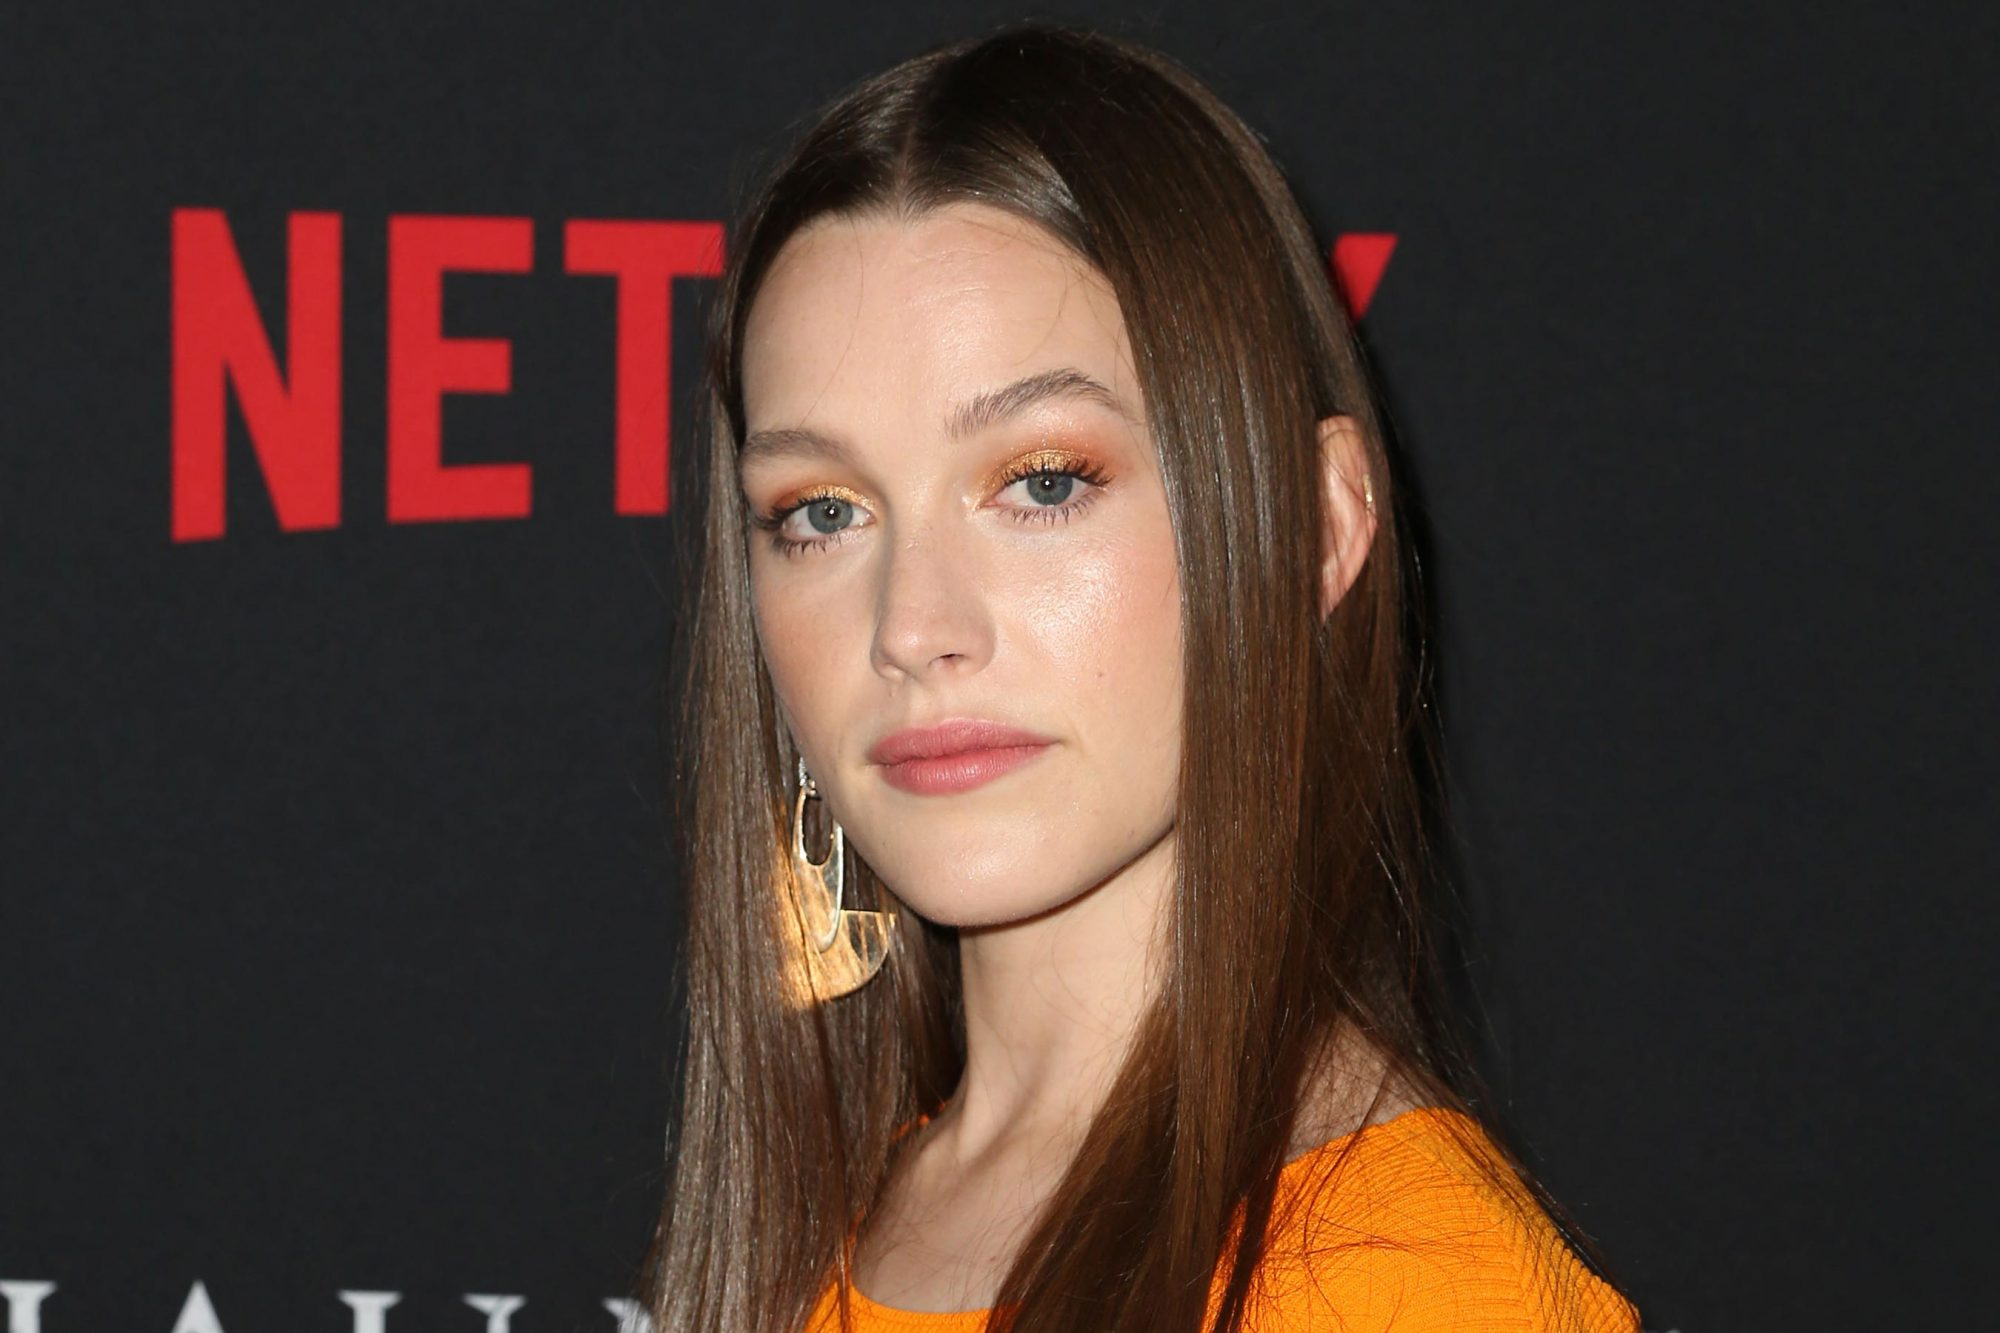 'The Haunting of Hill House' TV show premiere, Arrivals, Los Angeles, USA - 08 Oct 2018